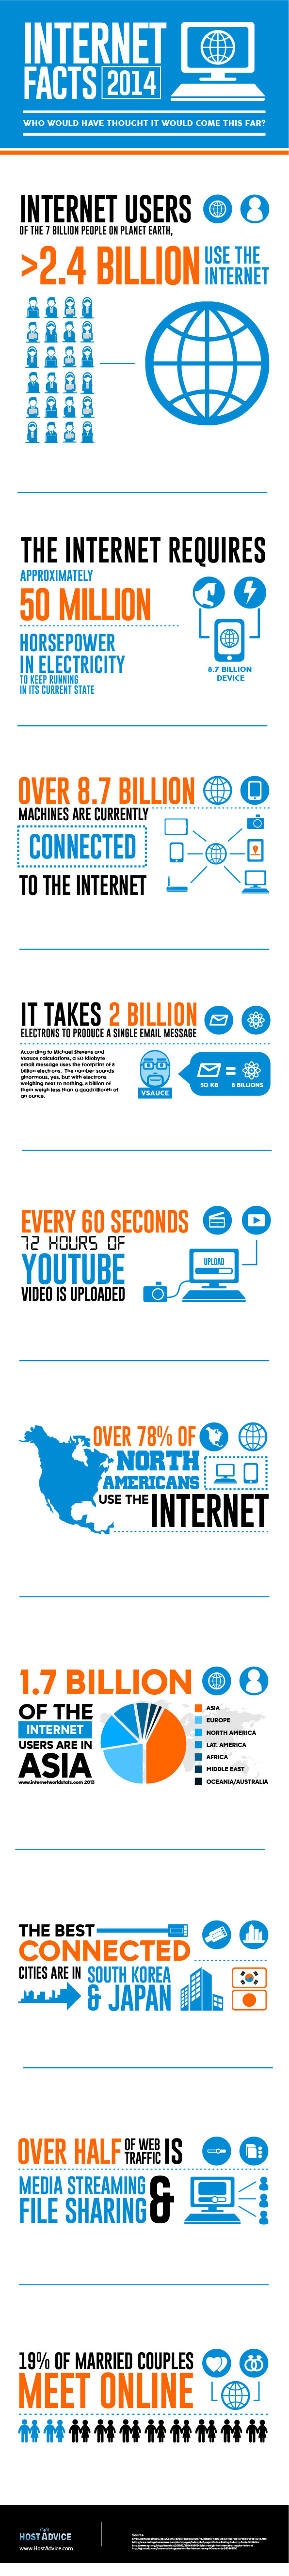 Internet-Facts-2014